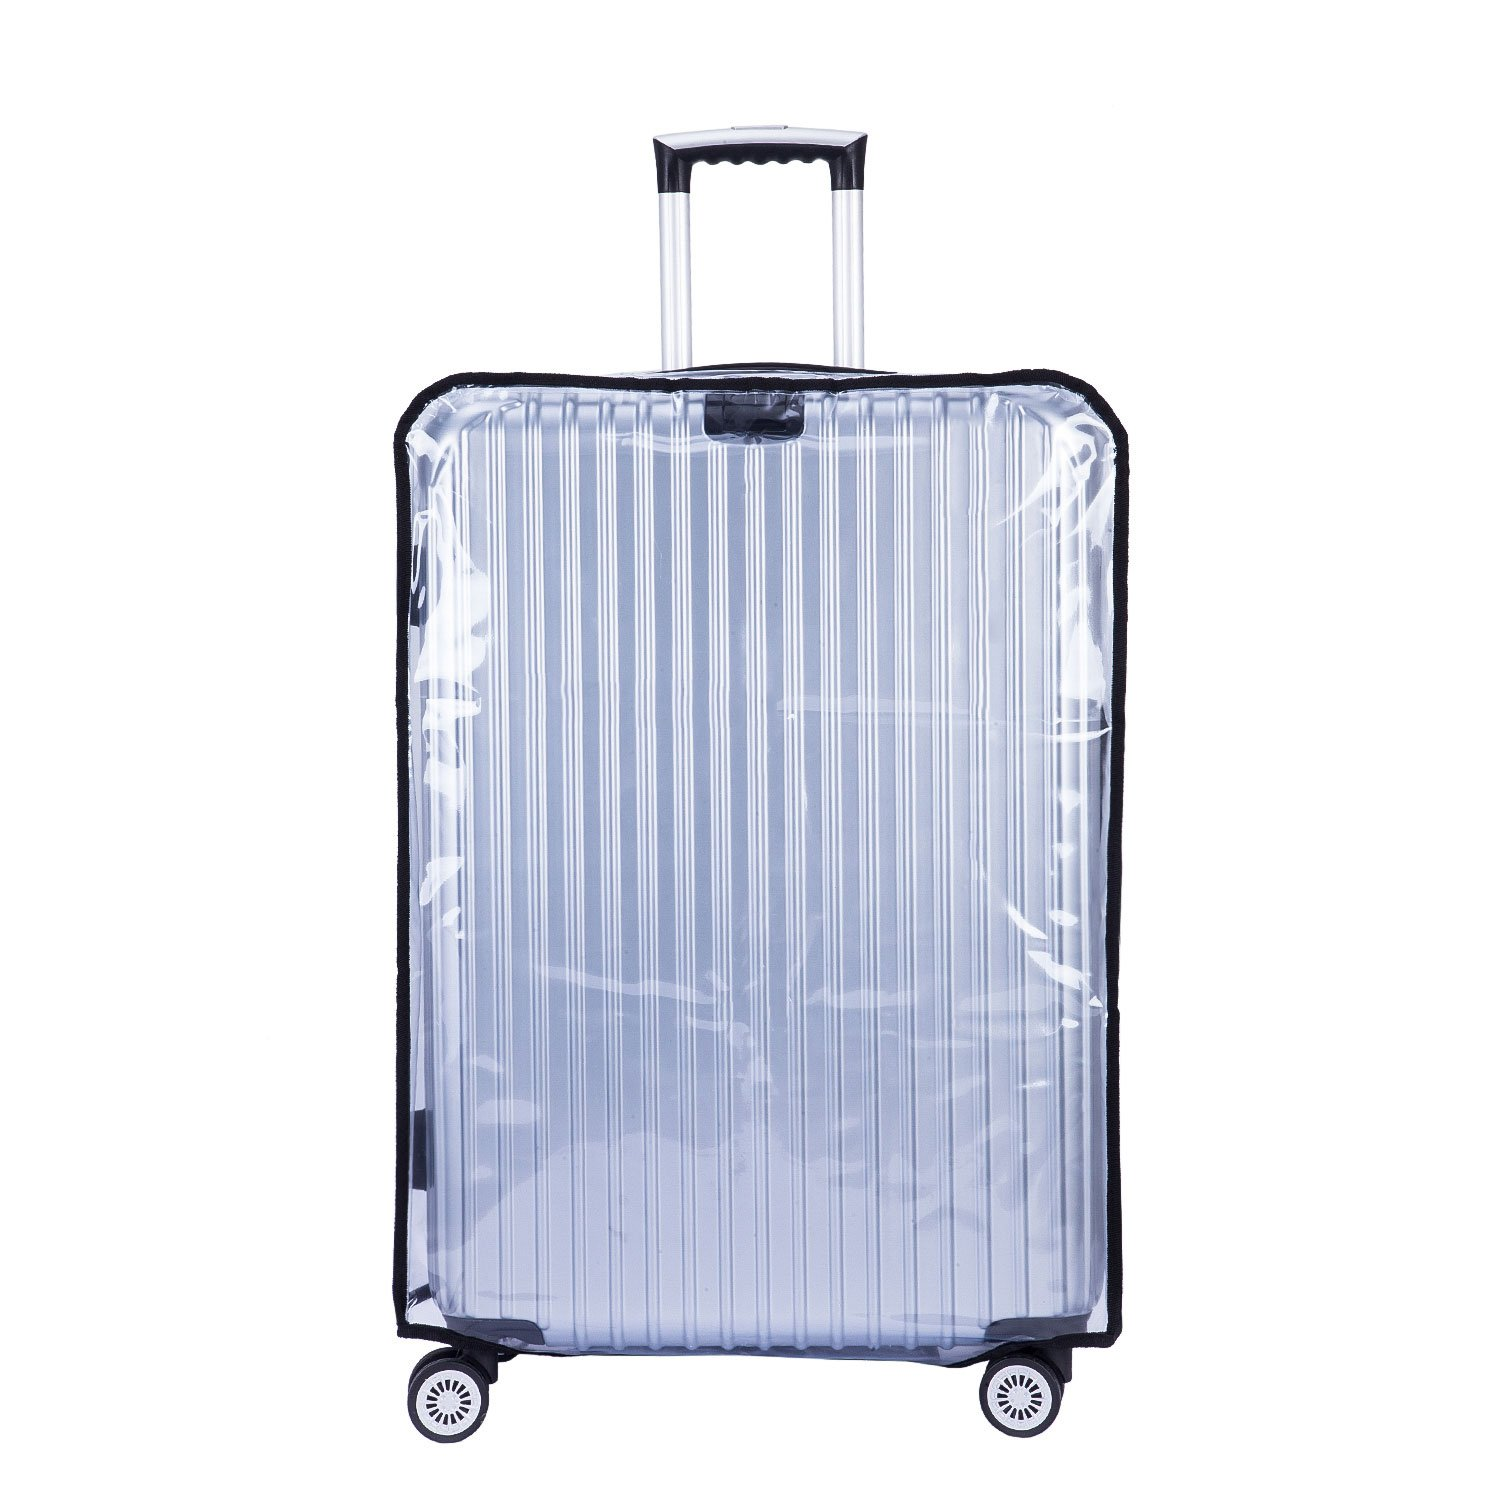 BlueCosto PVC Luggage Protector Travel Suitcase Cover 28'' (19.7''L x 12.2''W x 28.3''H) by BlueCosto (Image #3)